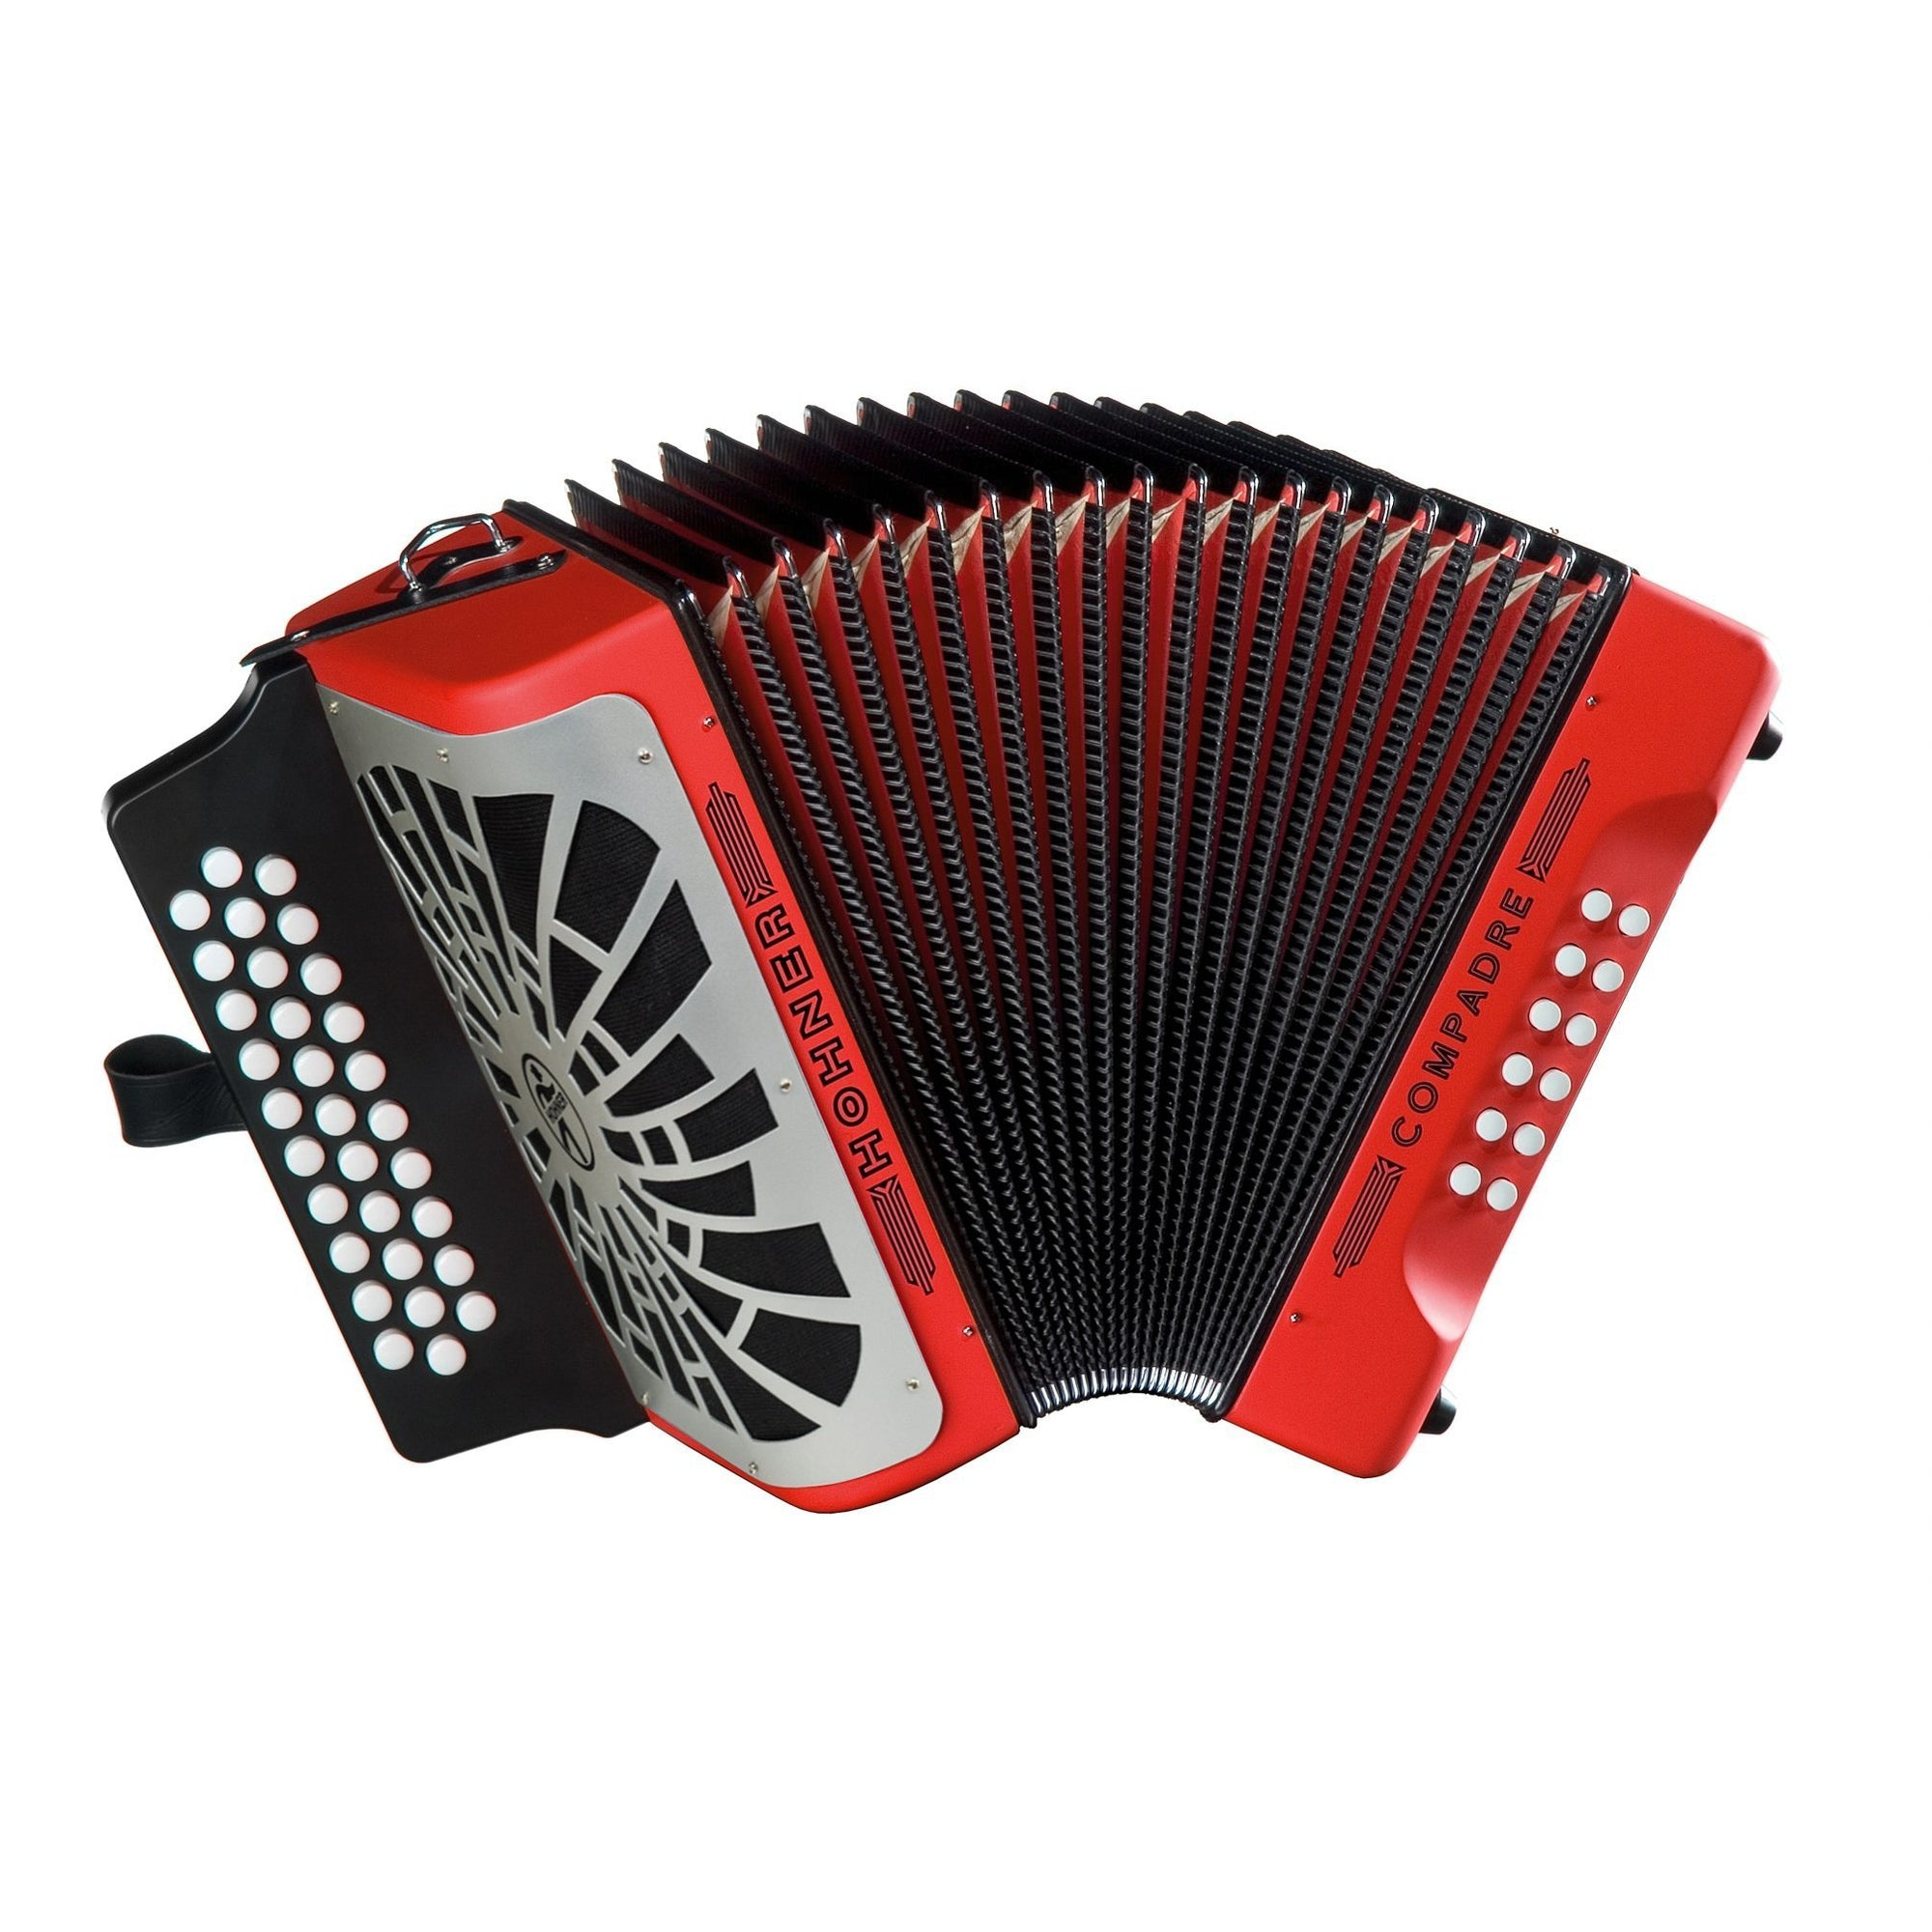 Hohner Compadre Accordion (with Gig Bag), Red, F/Bb/Eb, with Gig Bag